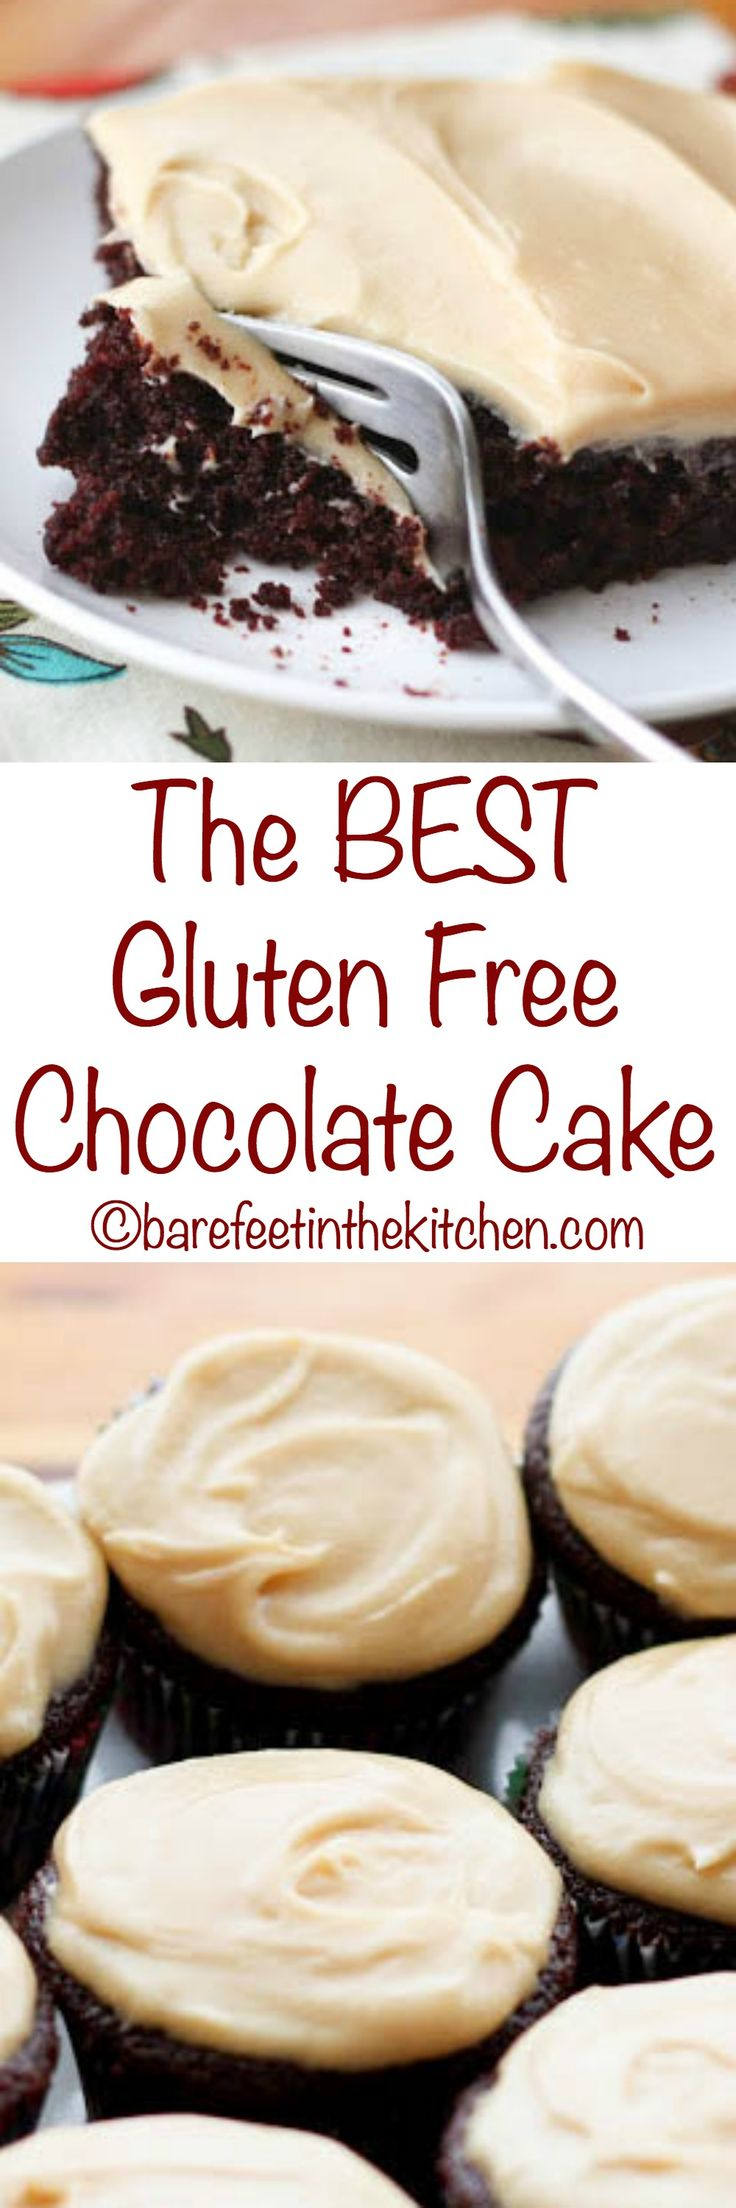 """The BEST Gluten Free Chocolate Cake doesn't taste """"gluten free"""" at ALL! - get the recipe at barefeetinthekitchen.com"""